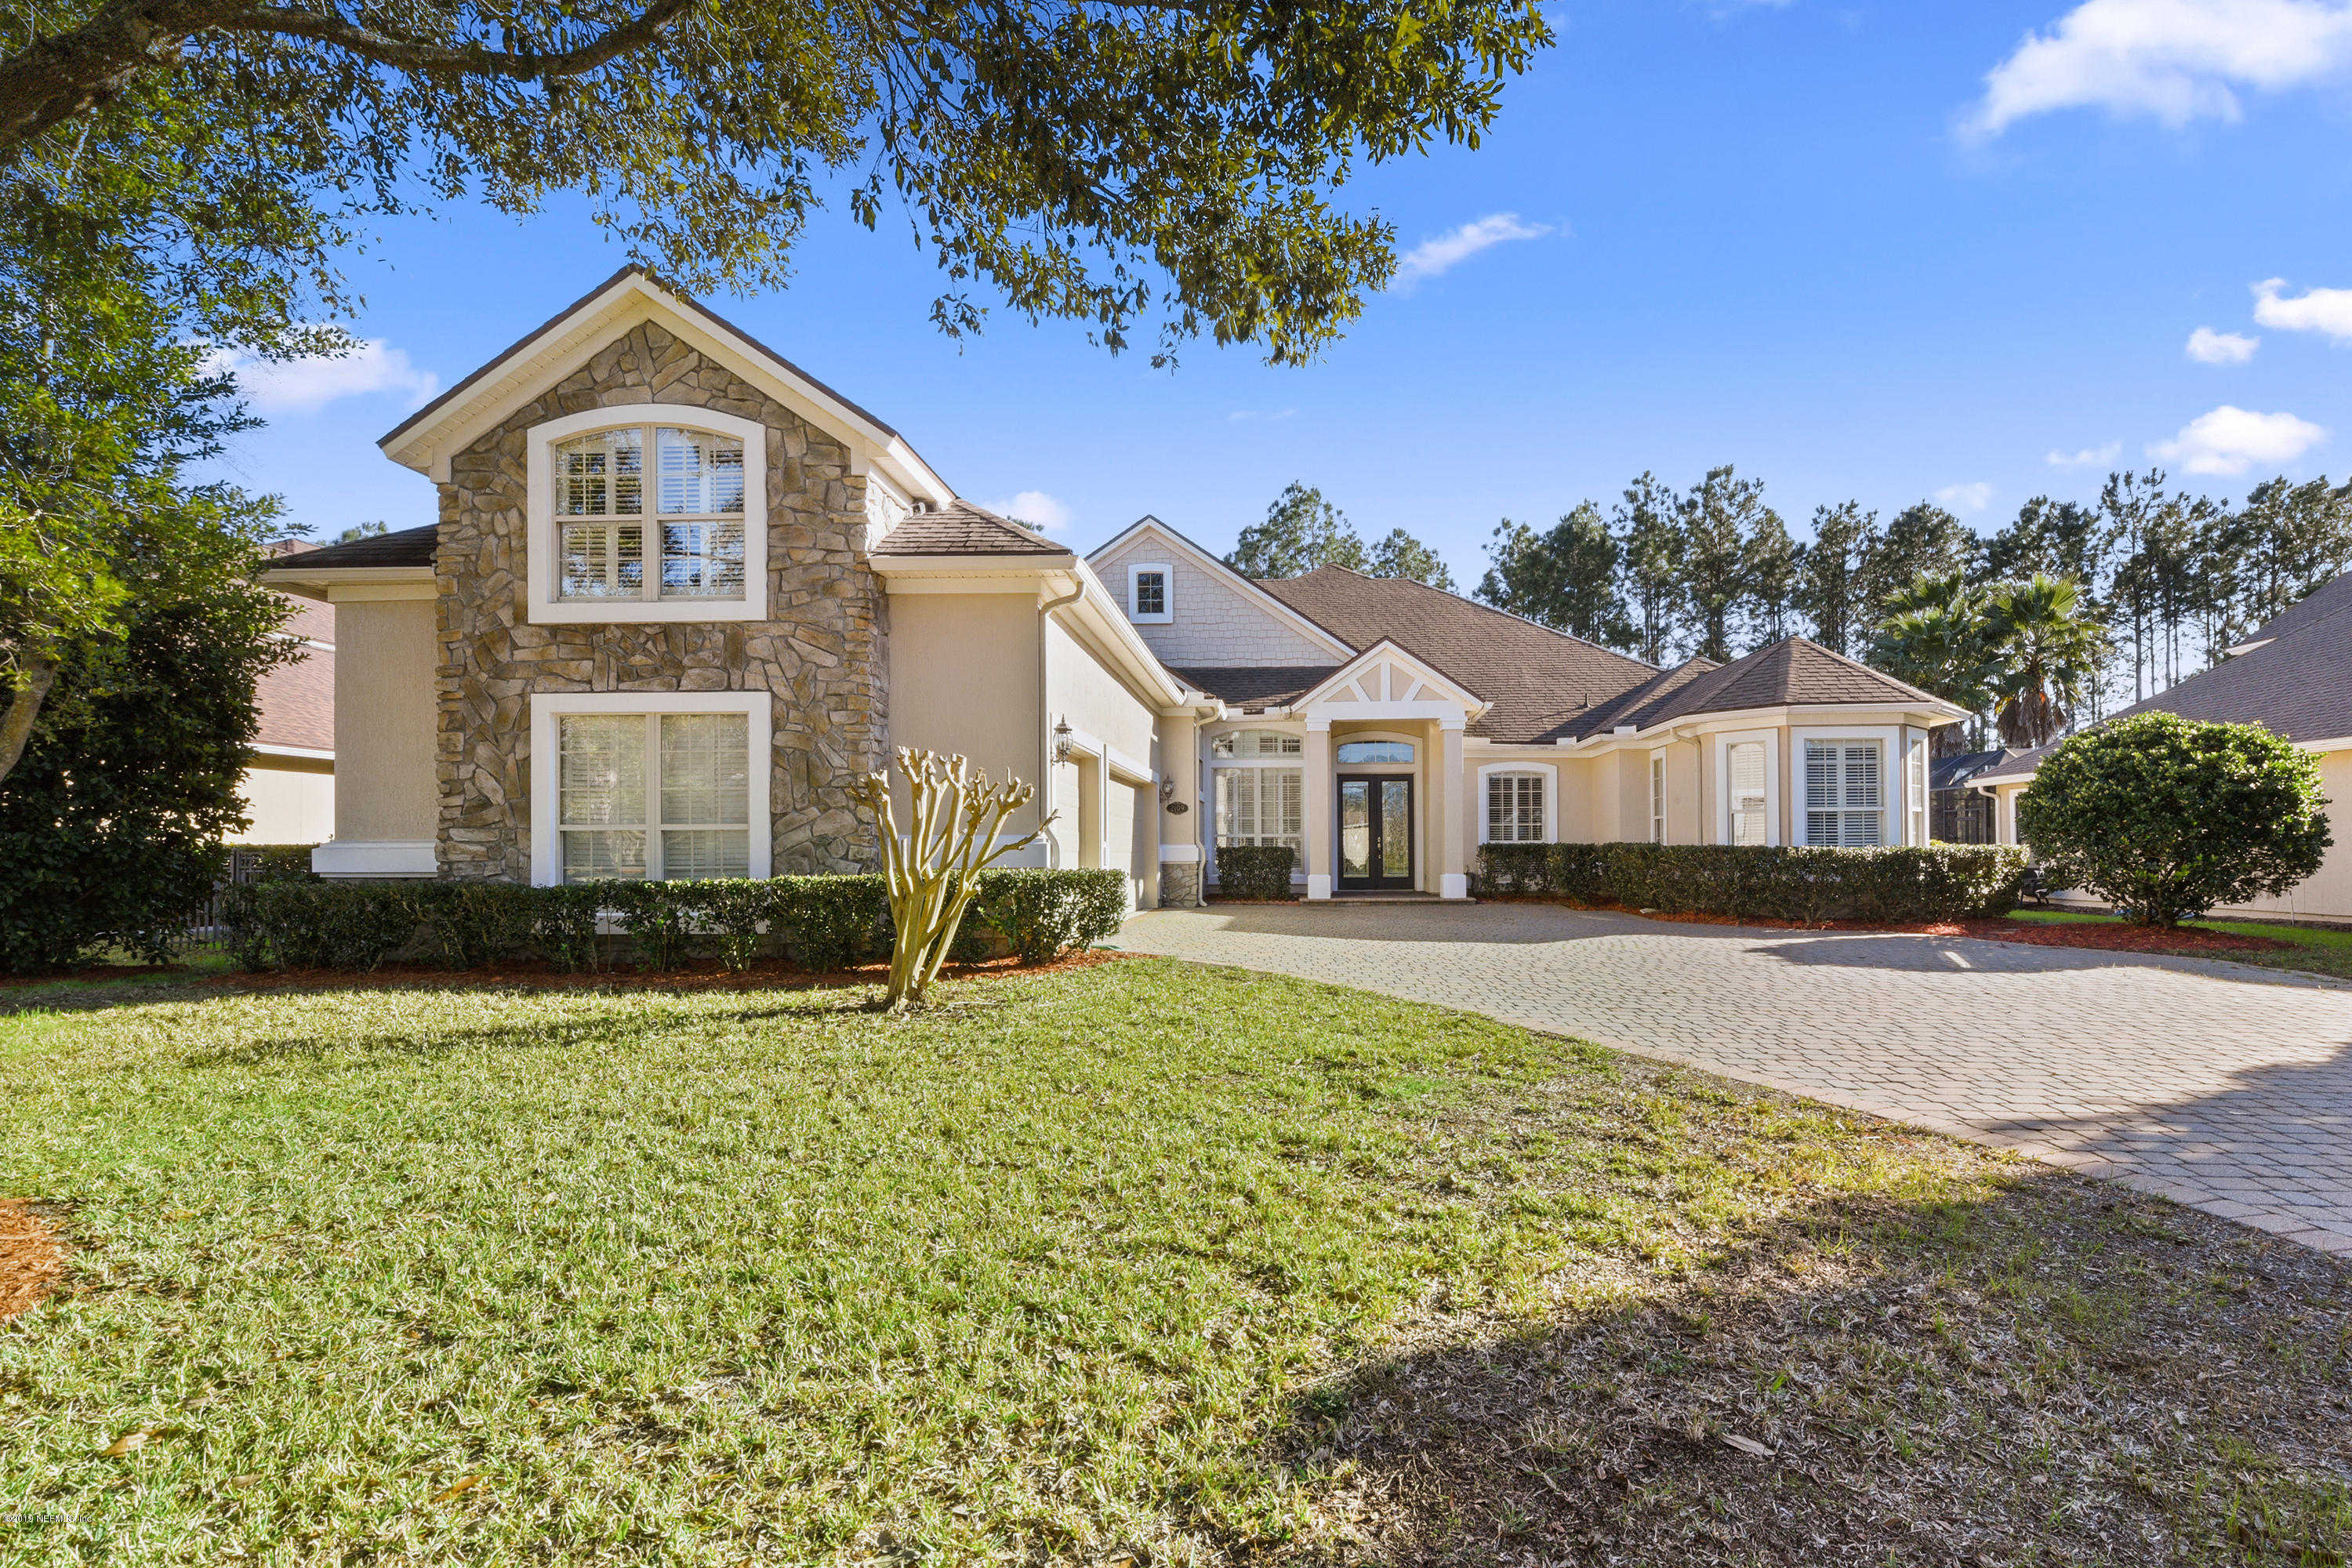 2109 W Quay Rd, St Augustine, FL 32092 now has a new price of $495,000!